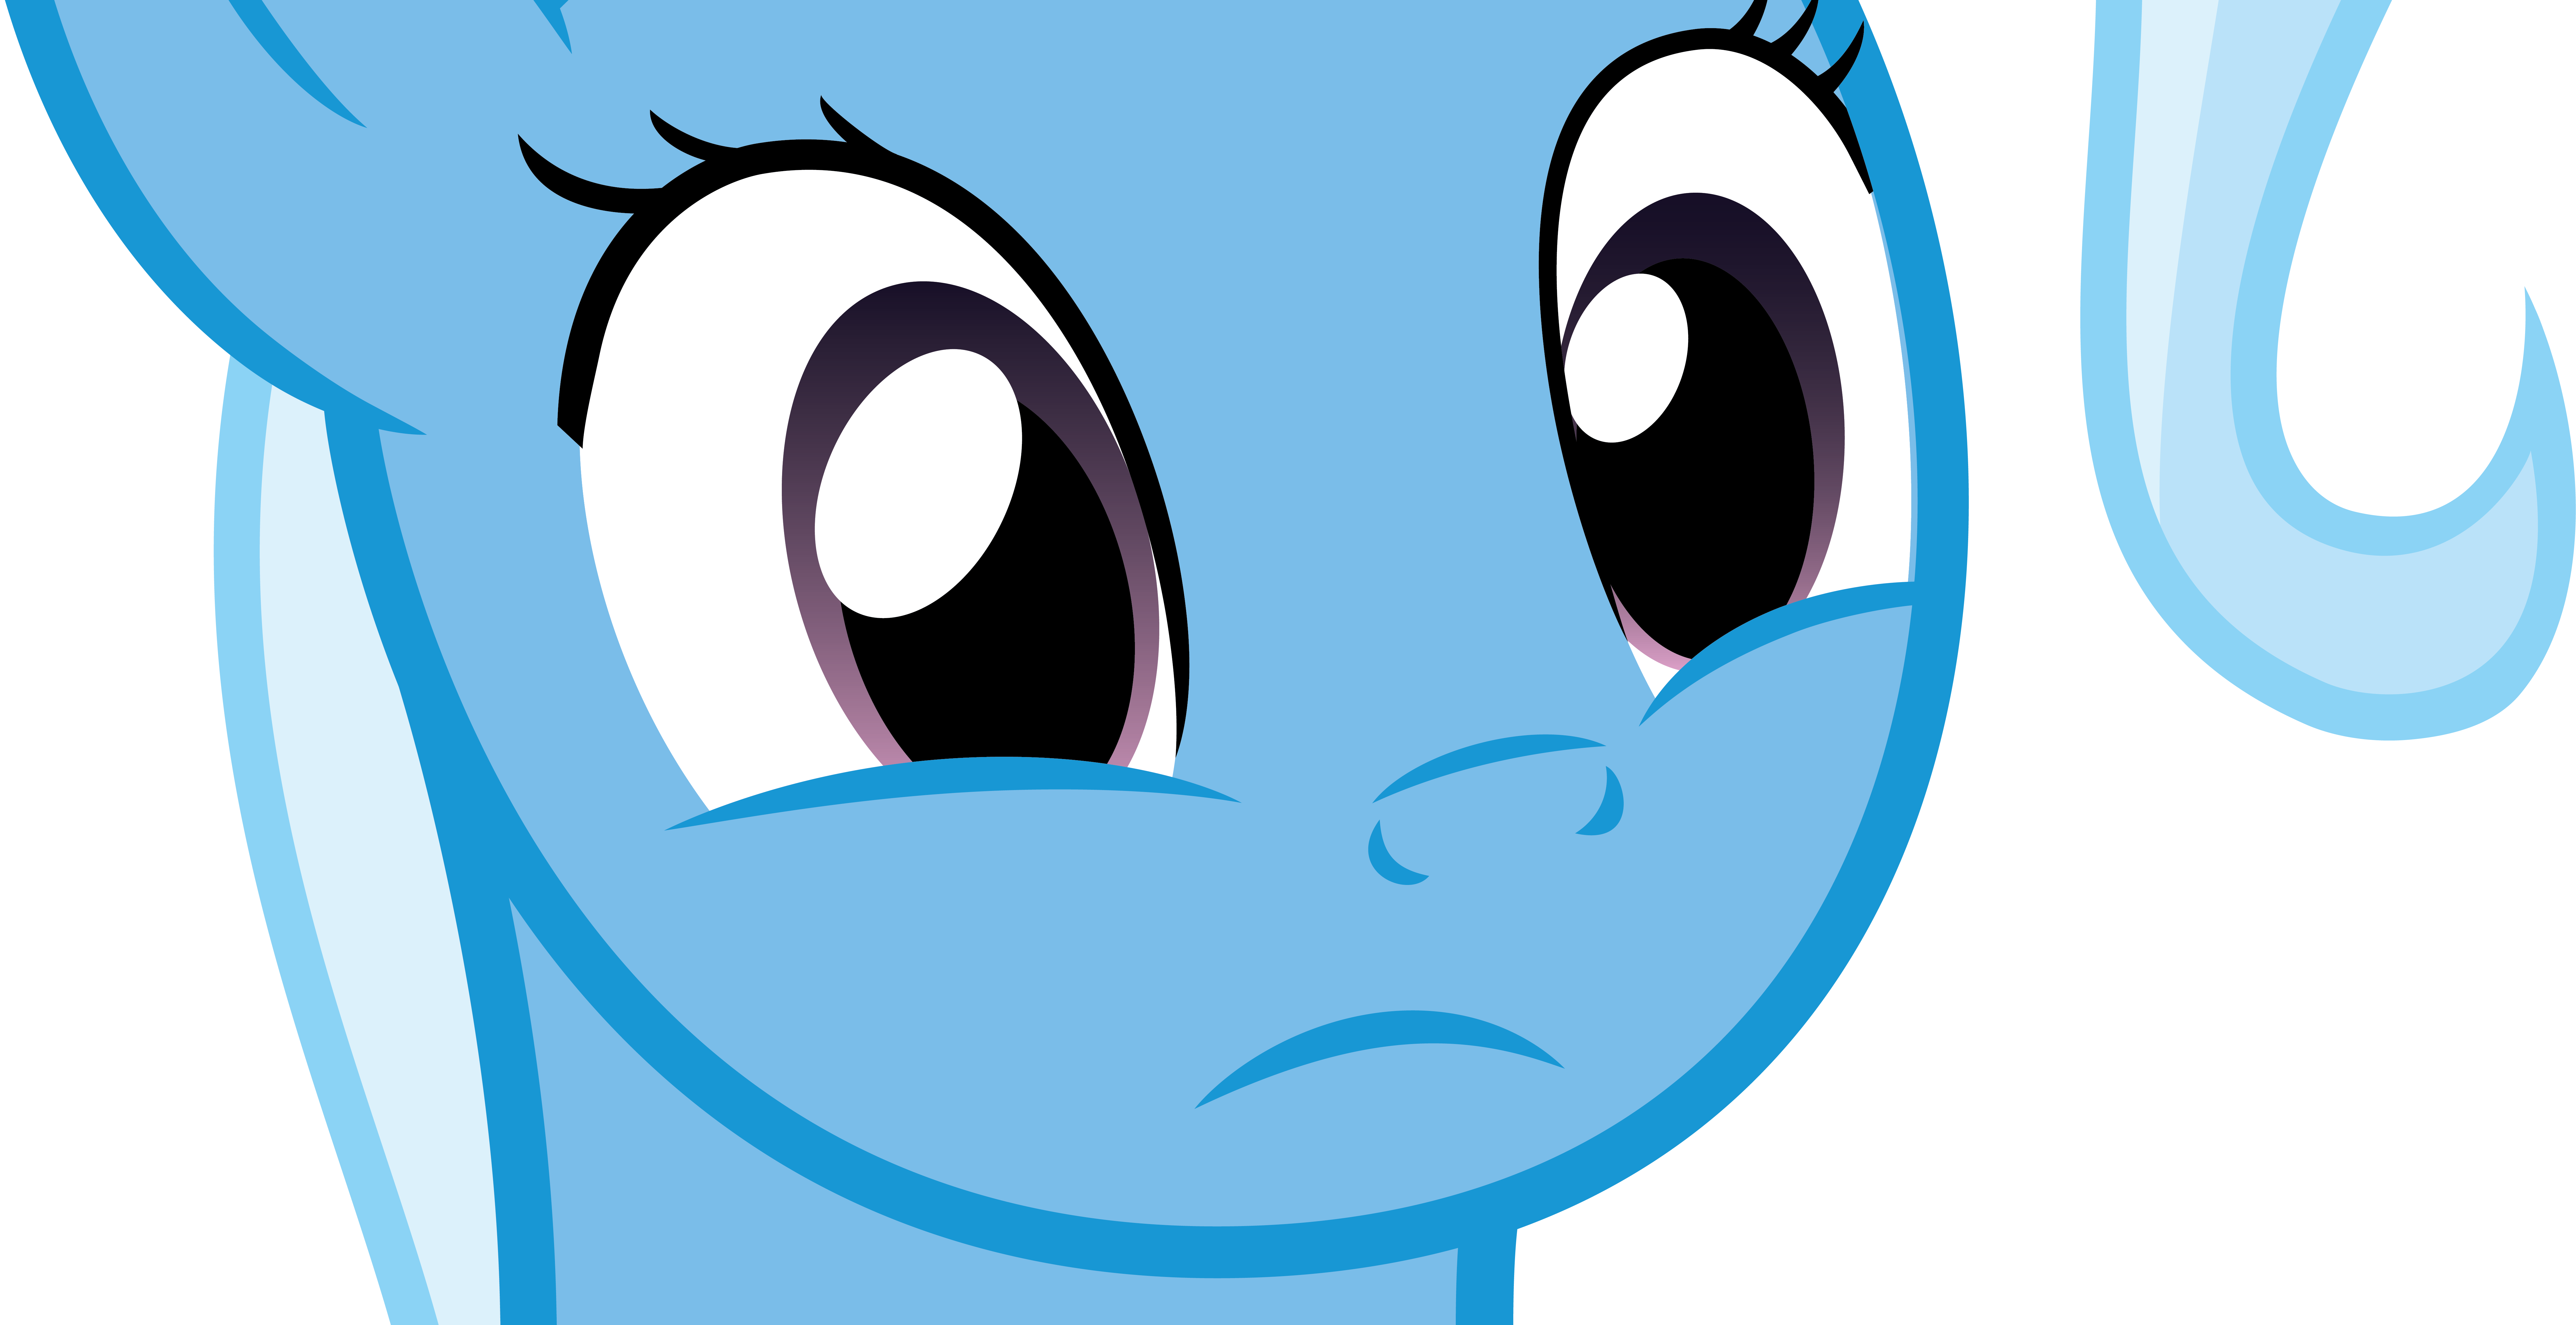 Trixie is ever so slightly confused